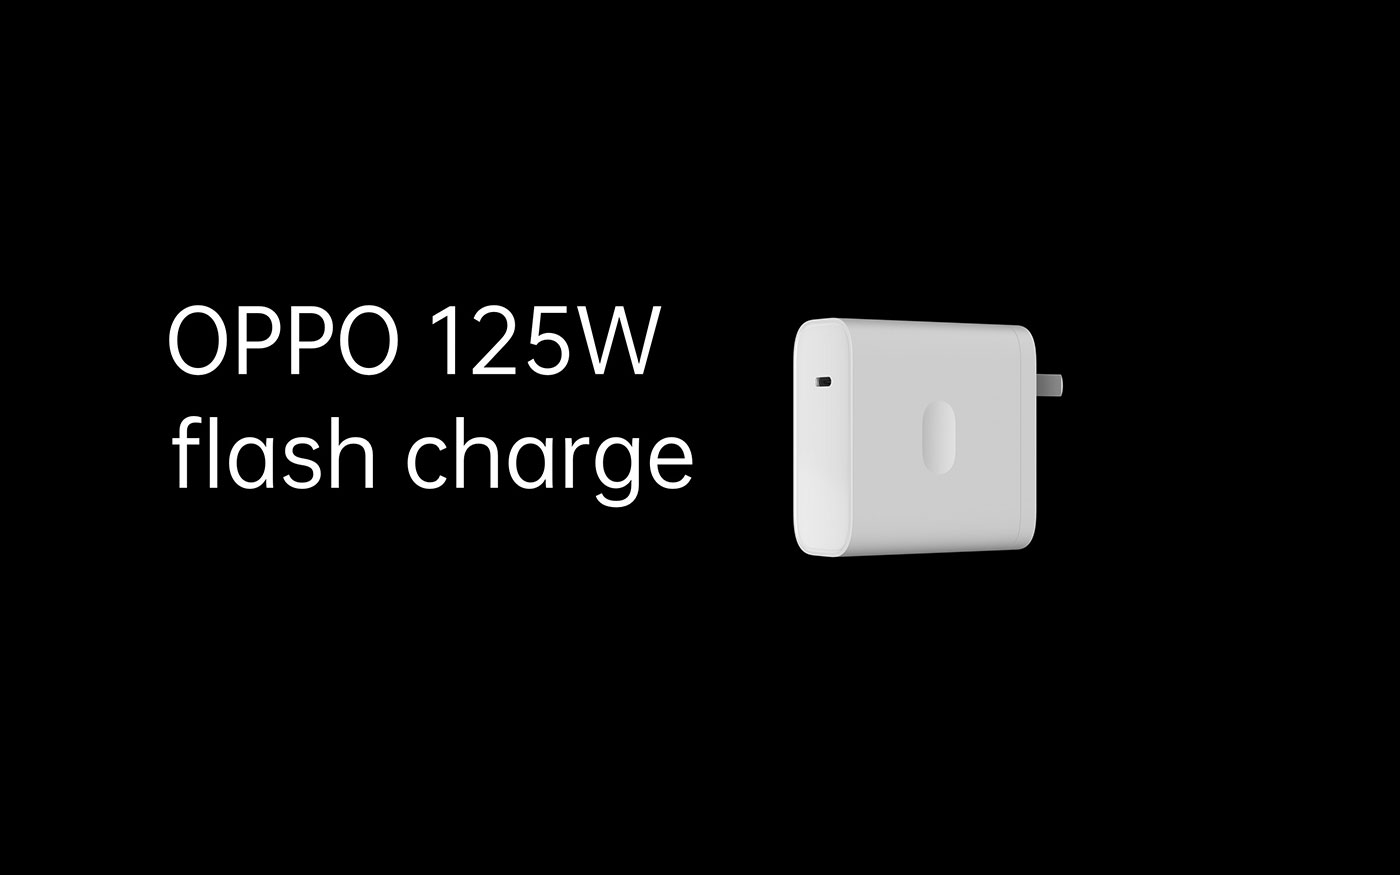 OPPO 125W flash charge charger